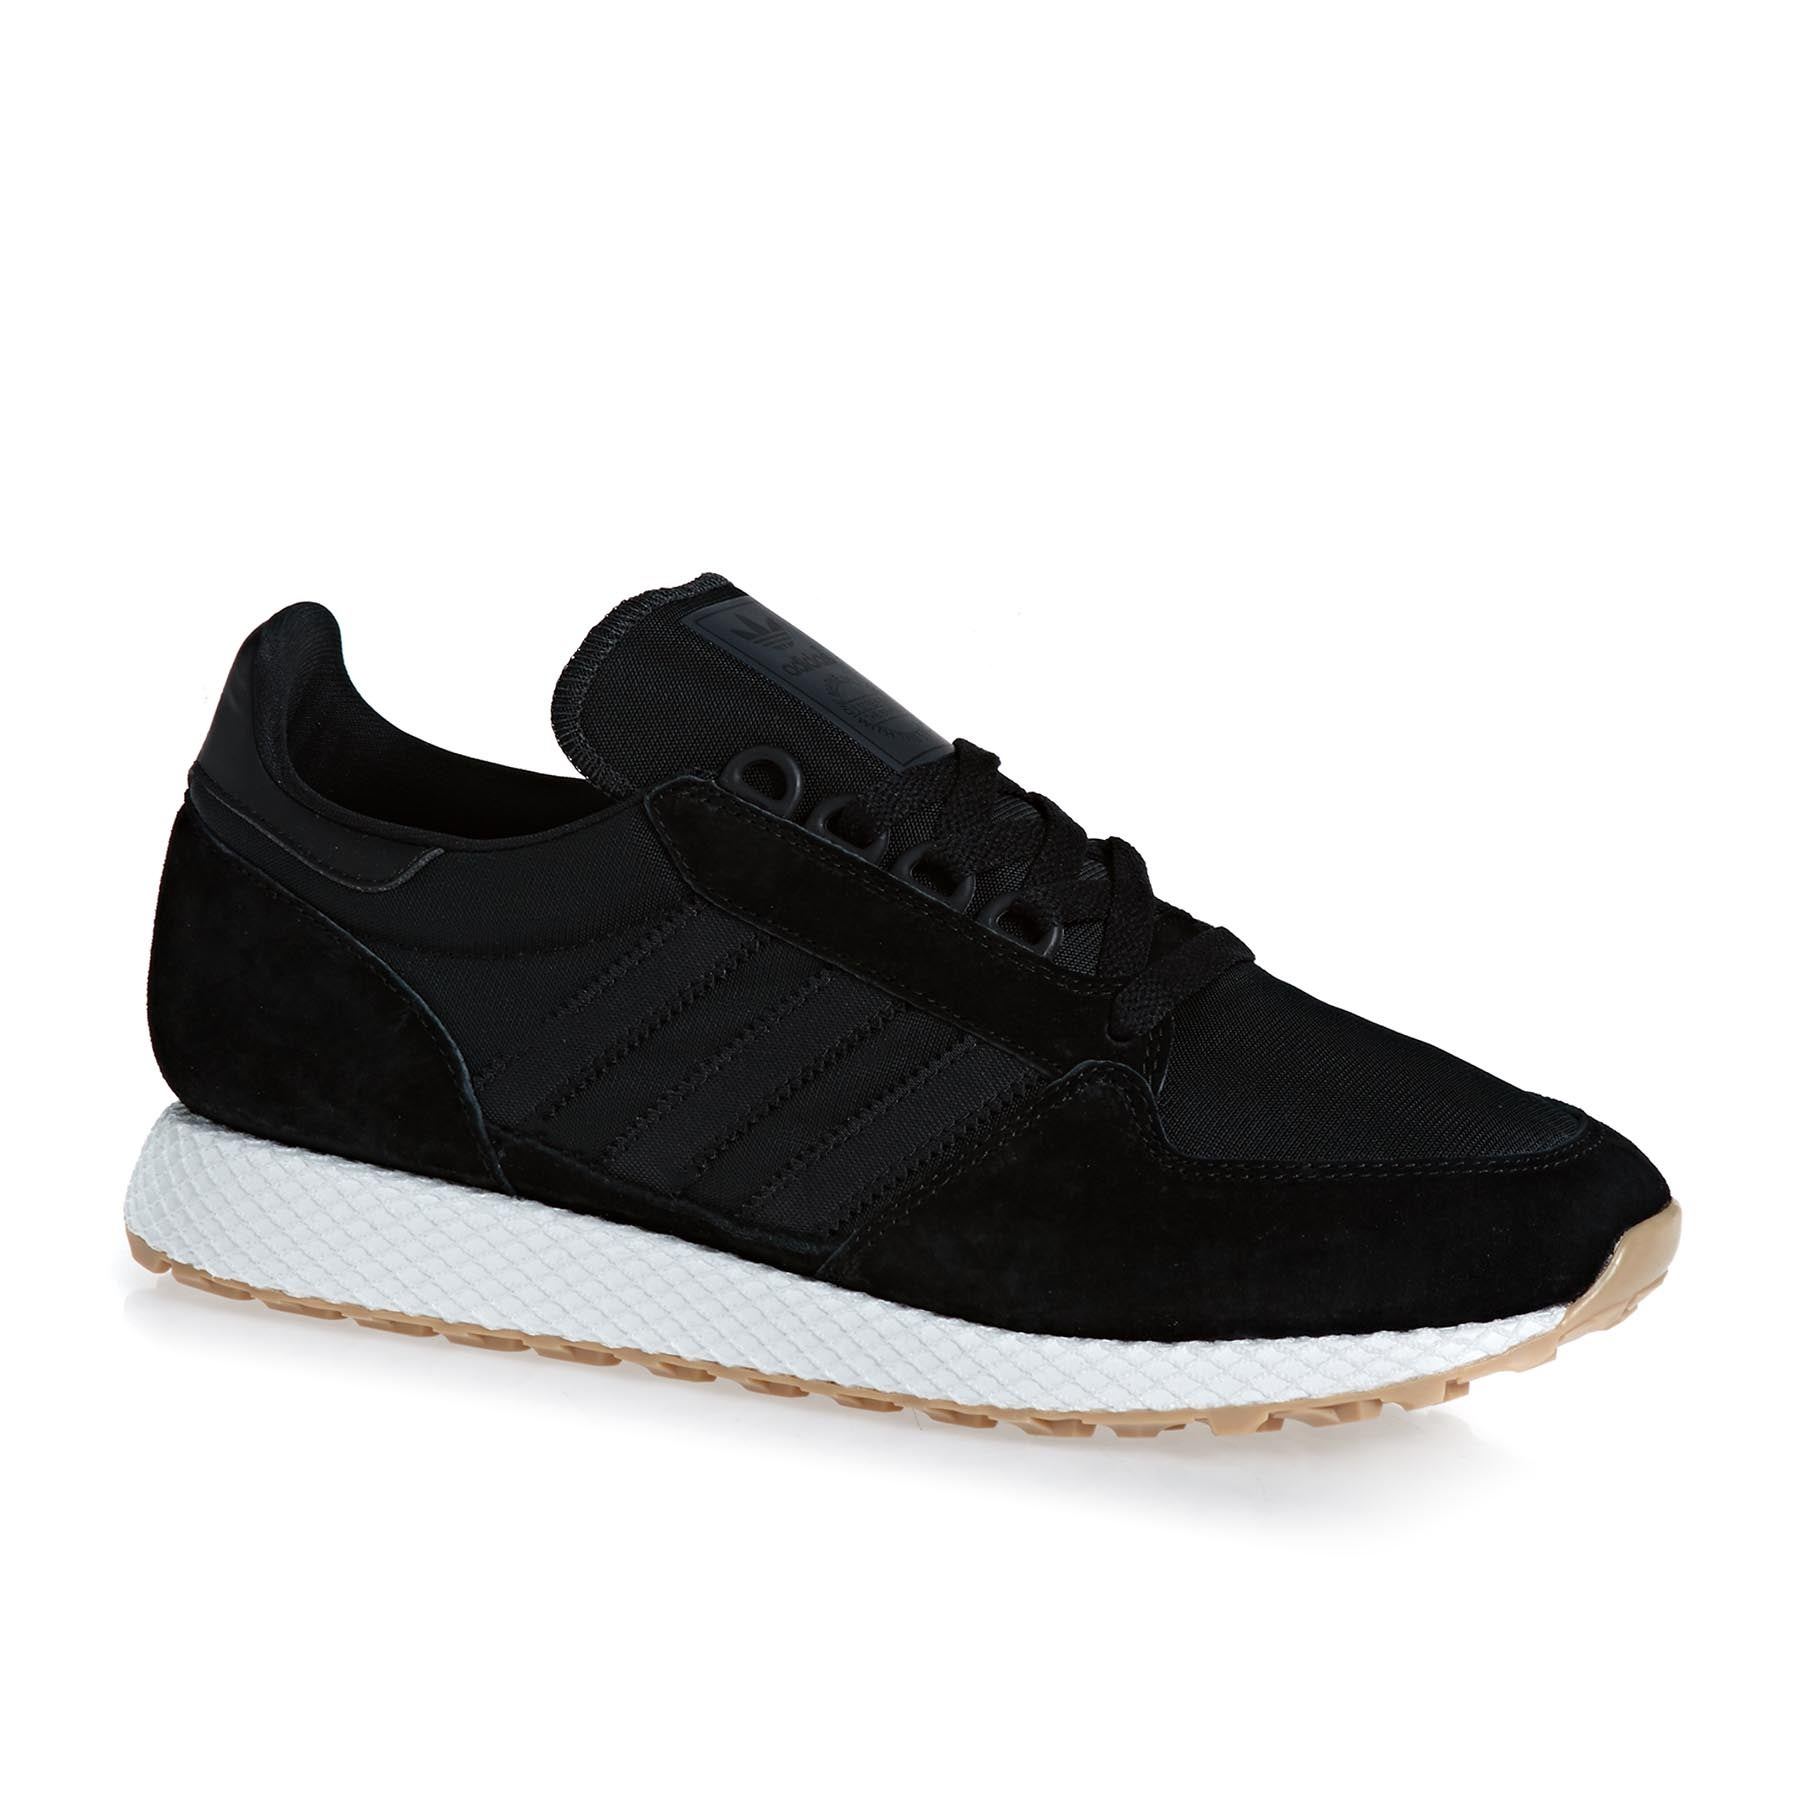 02c694e07607 Adidas Originals Forest Grove Shoes available from Surfdome